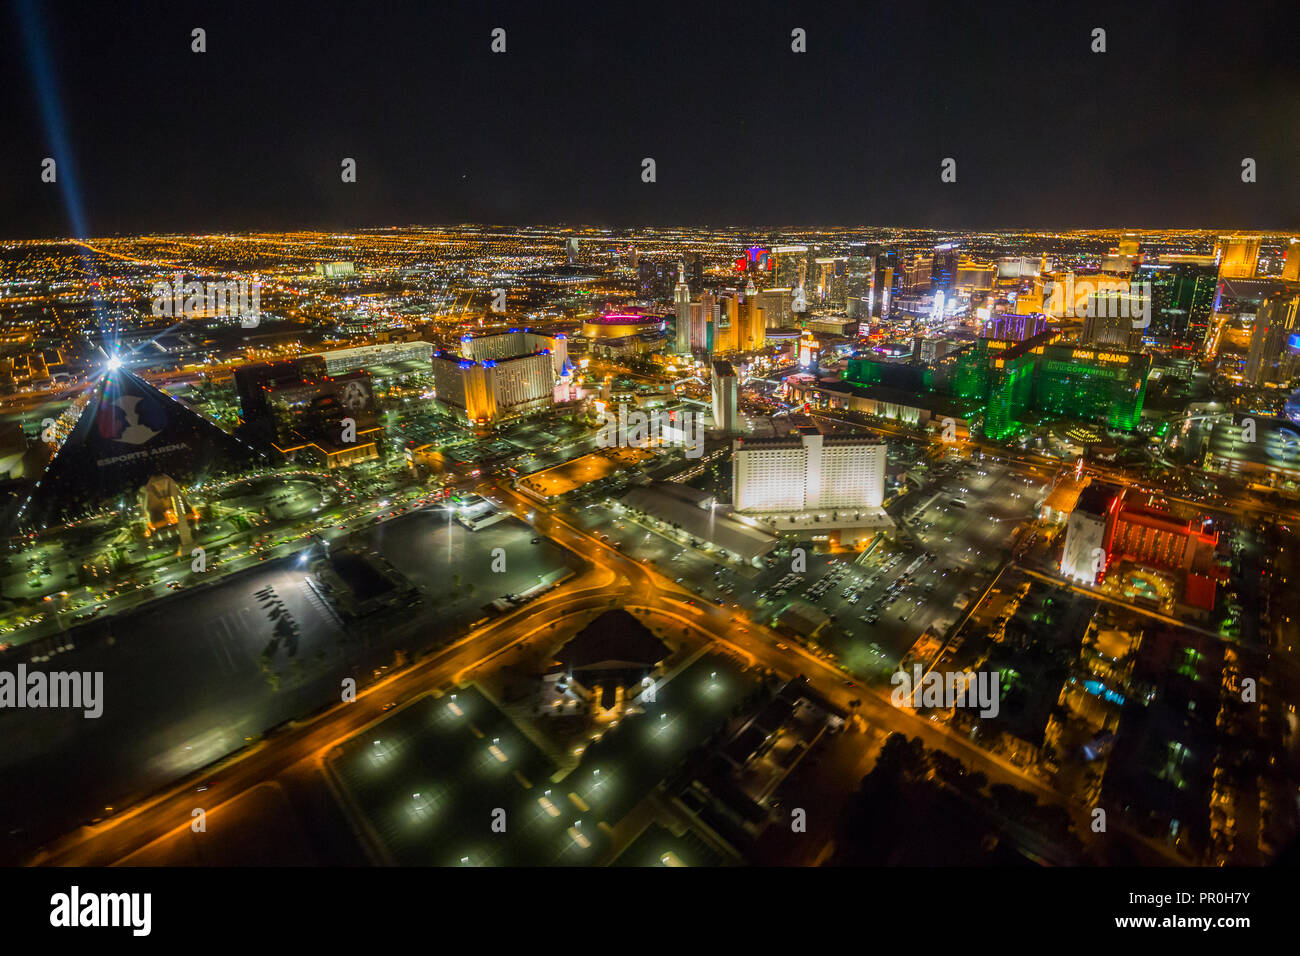 View of Las Vegas and The Strip from helicopter at night, Las Vegas, Nevada, United States of America, North America Stock Photo